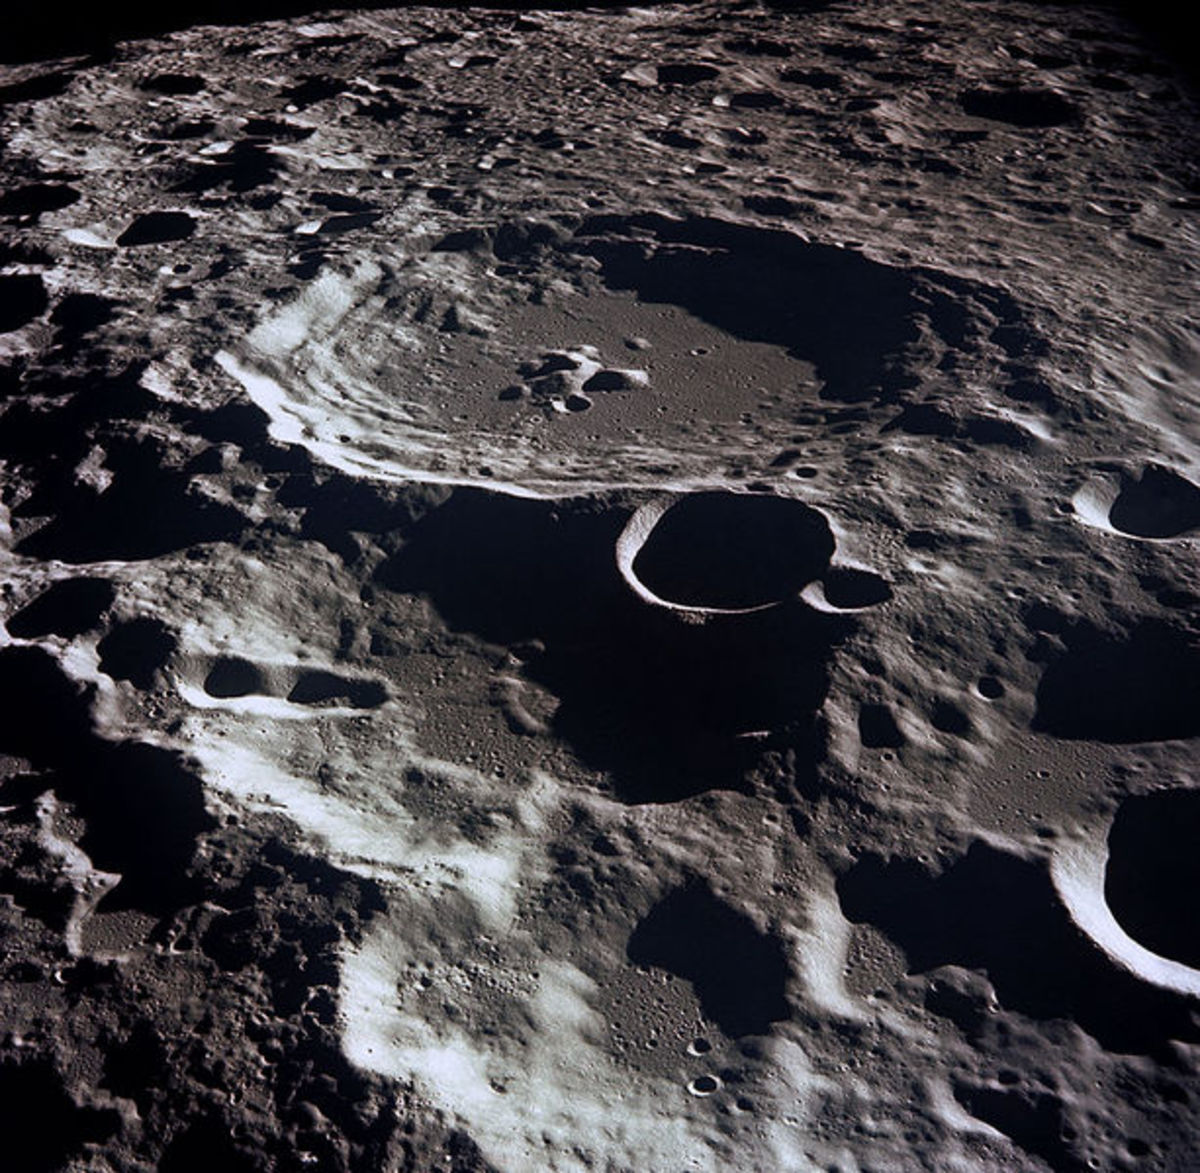 Craters on the Moon.